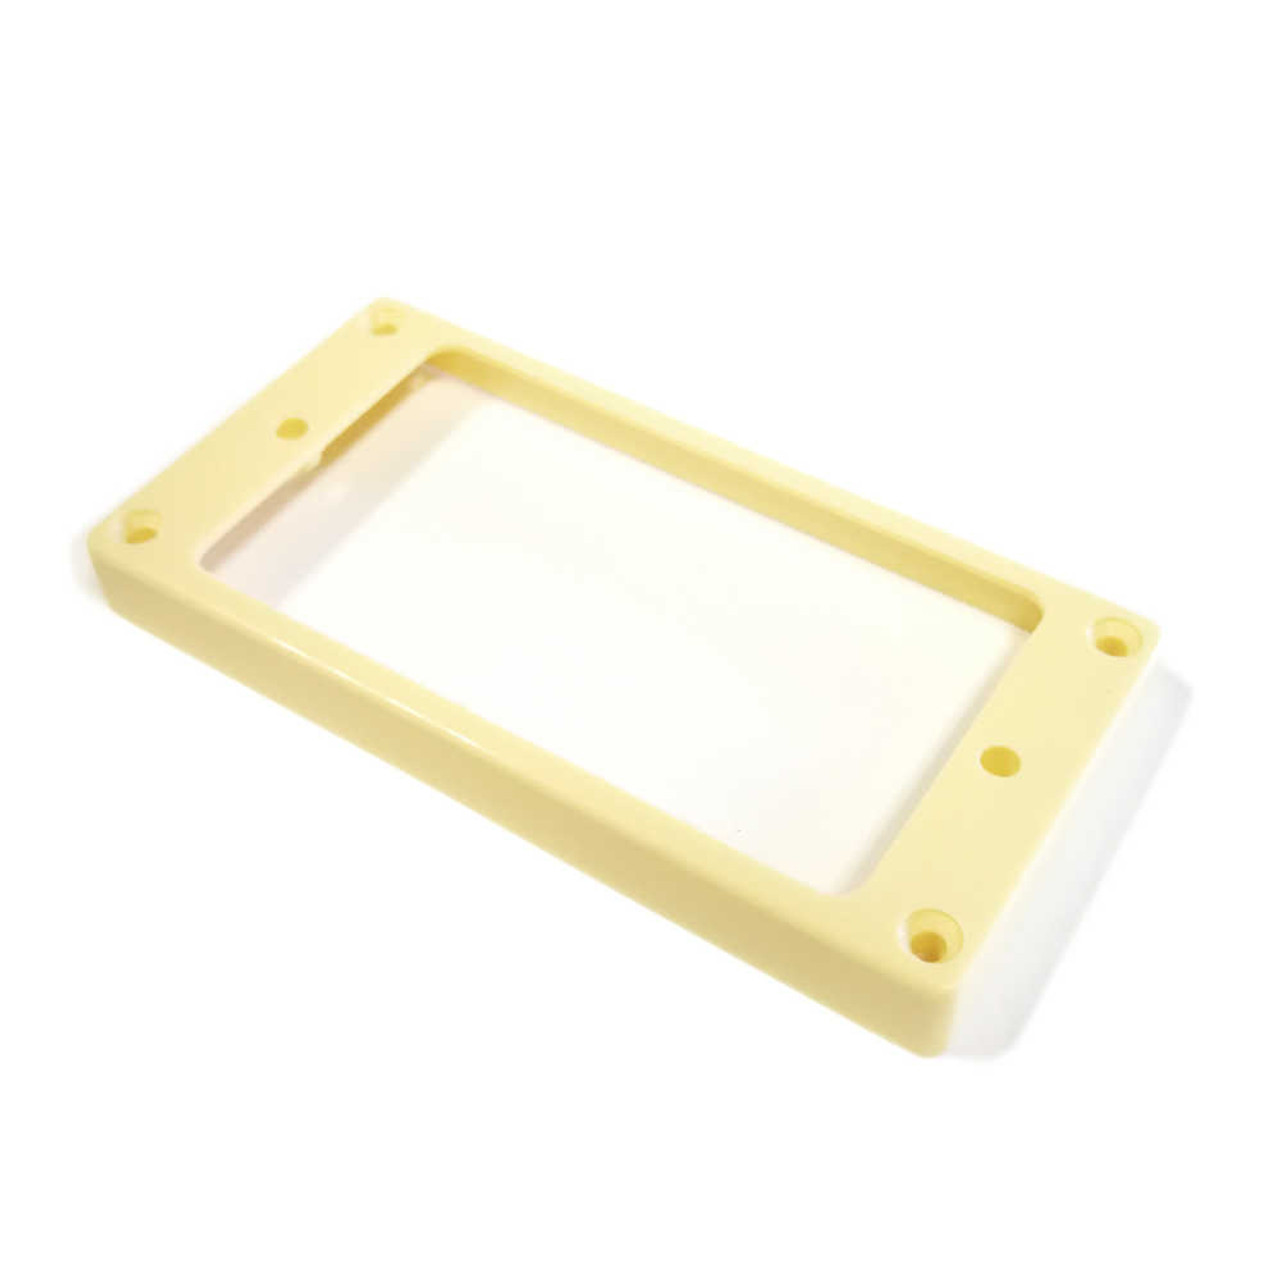 Pickup Ring - Humbucking Flat/Slanted Tall - Cream